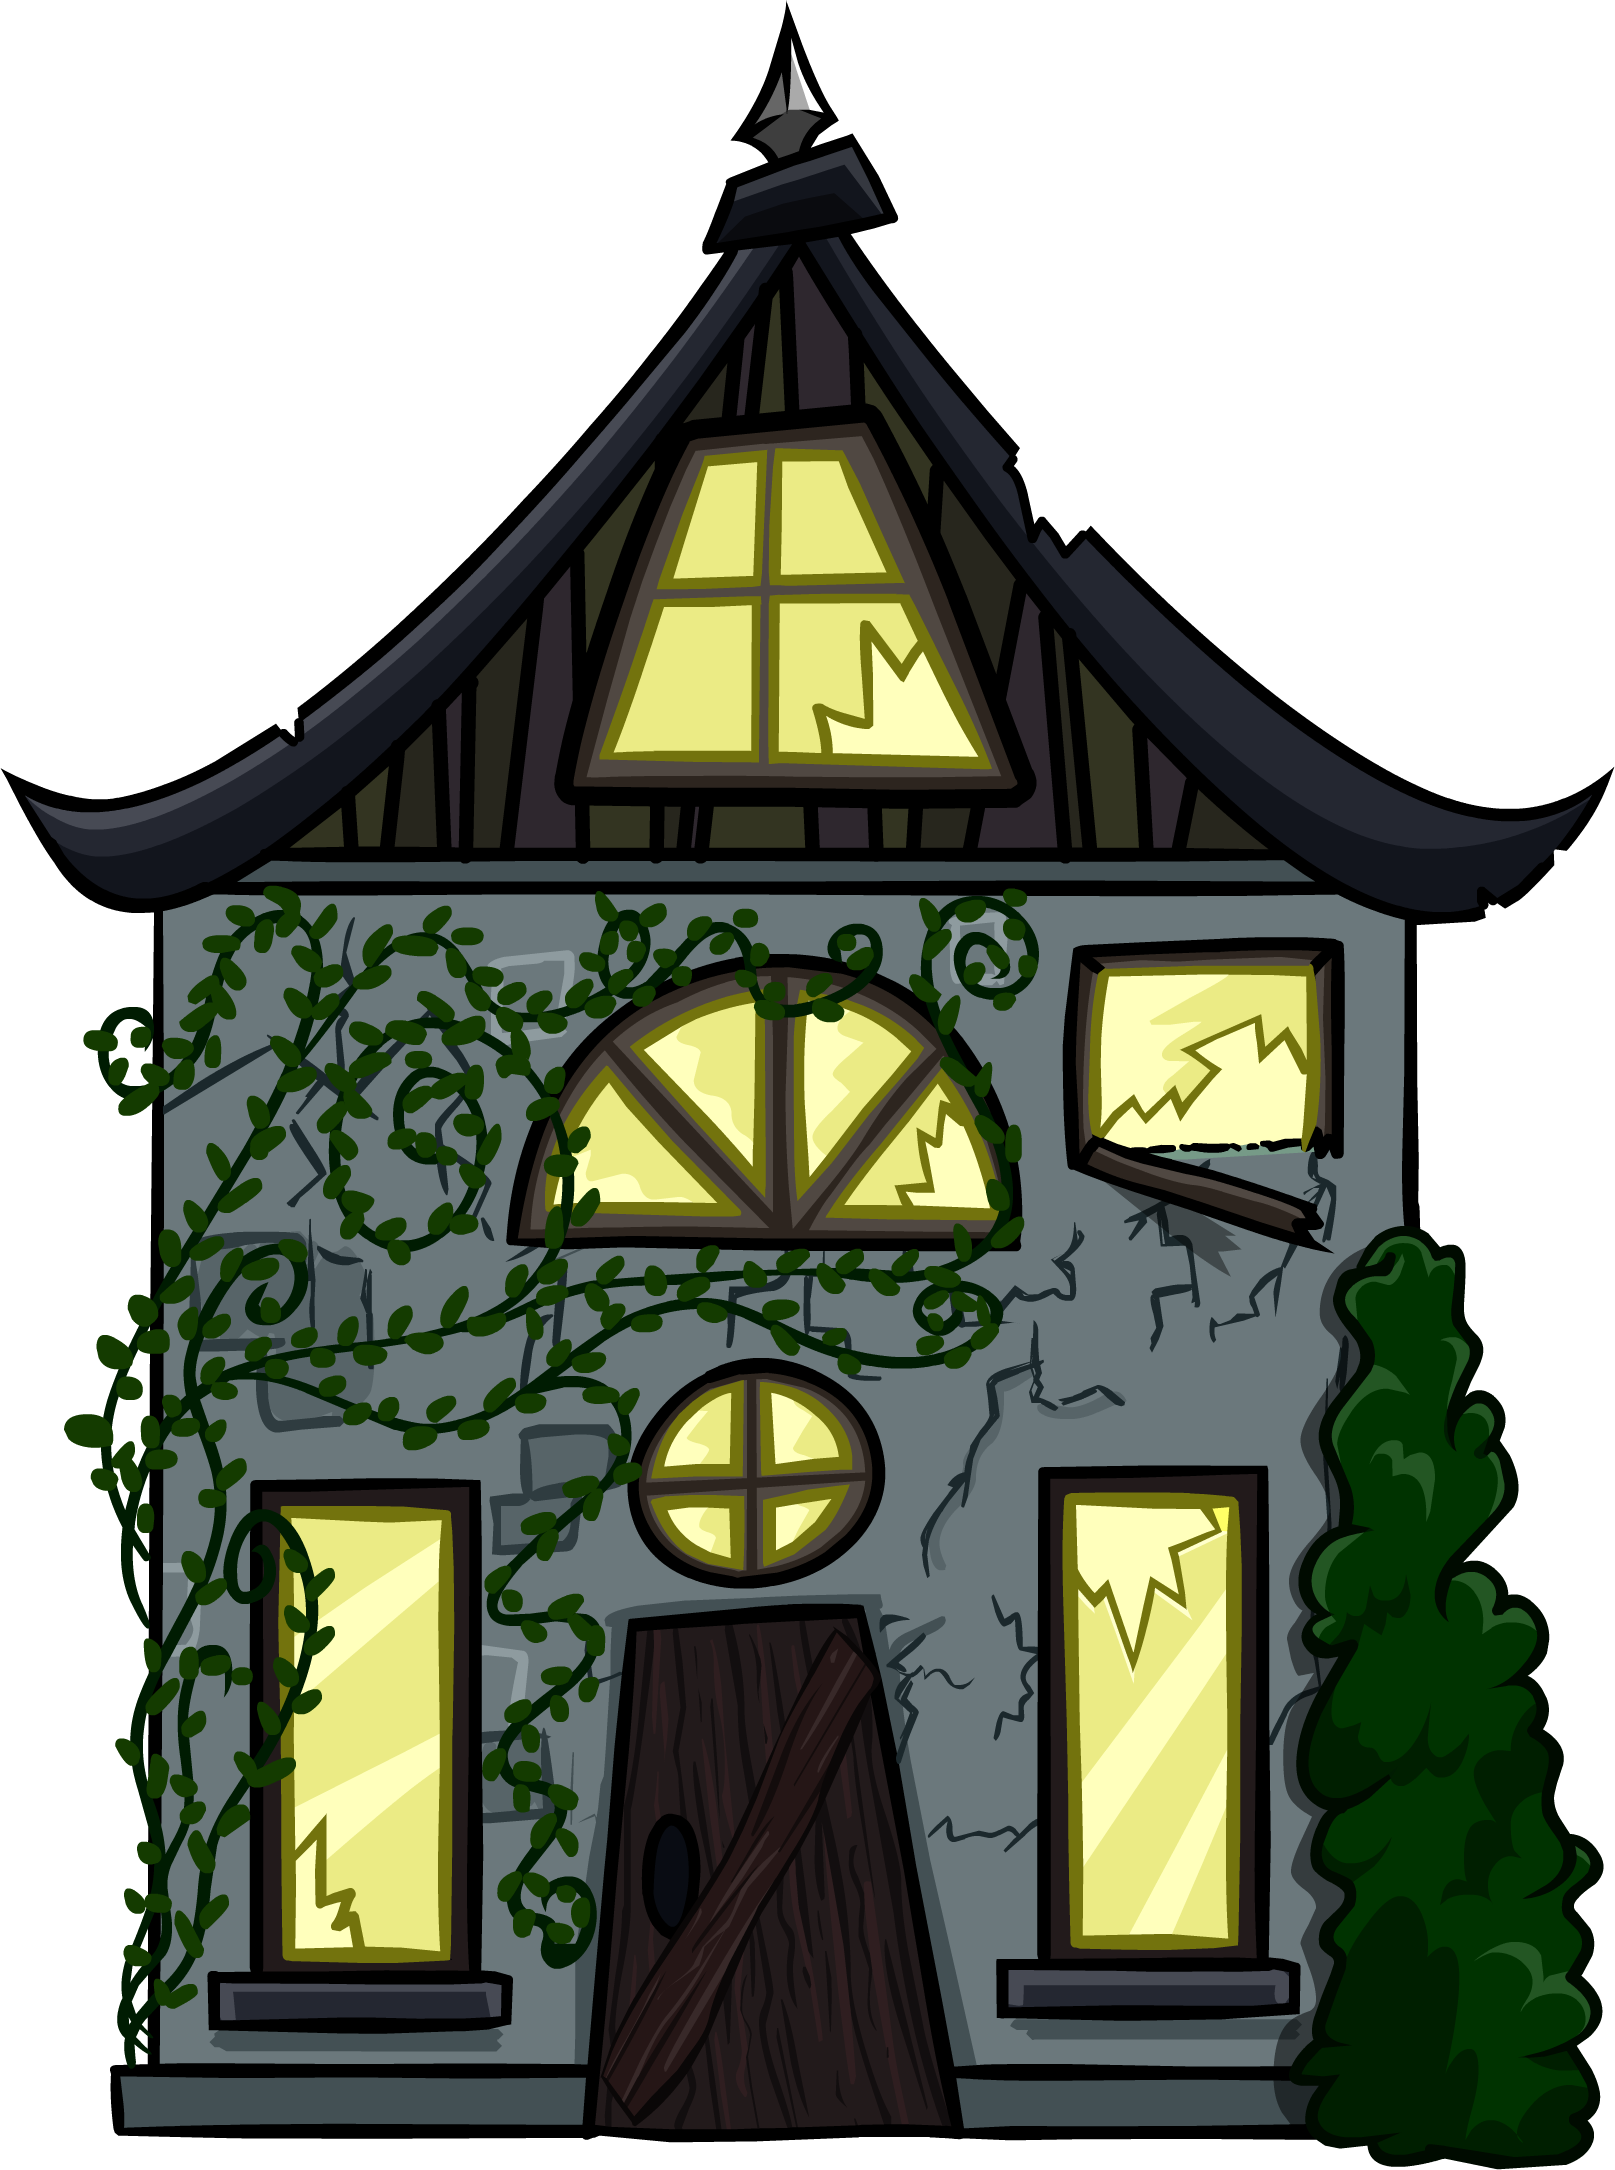 Creepy Cottage Cut-Out